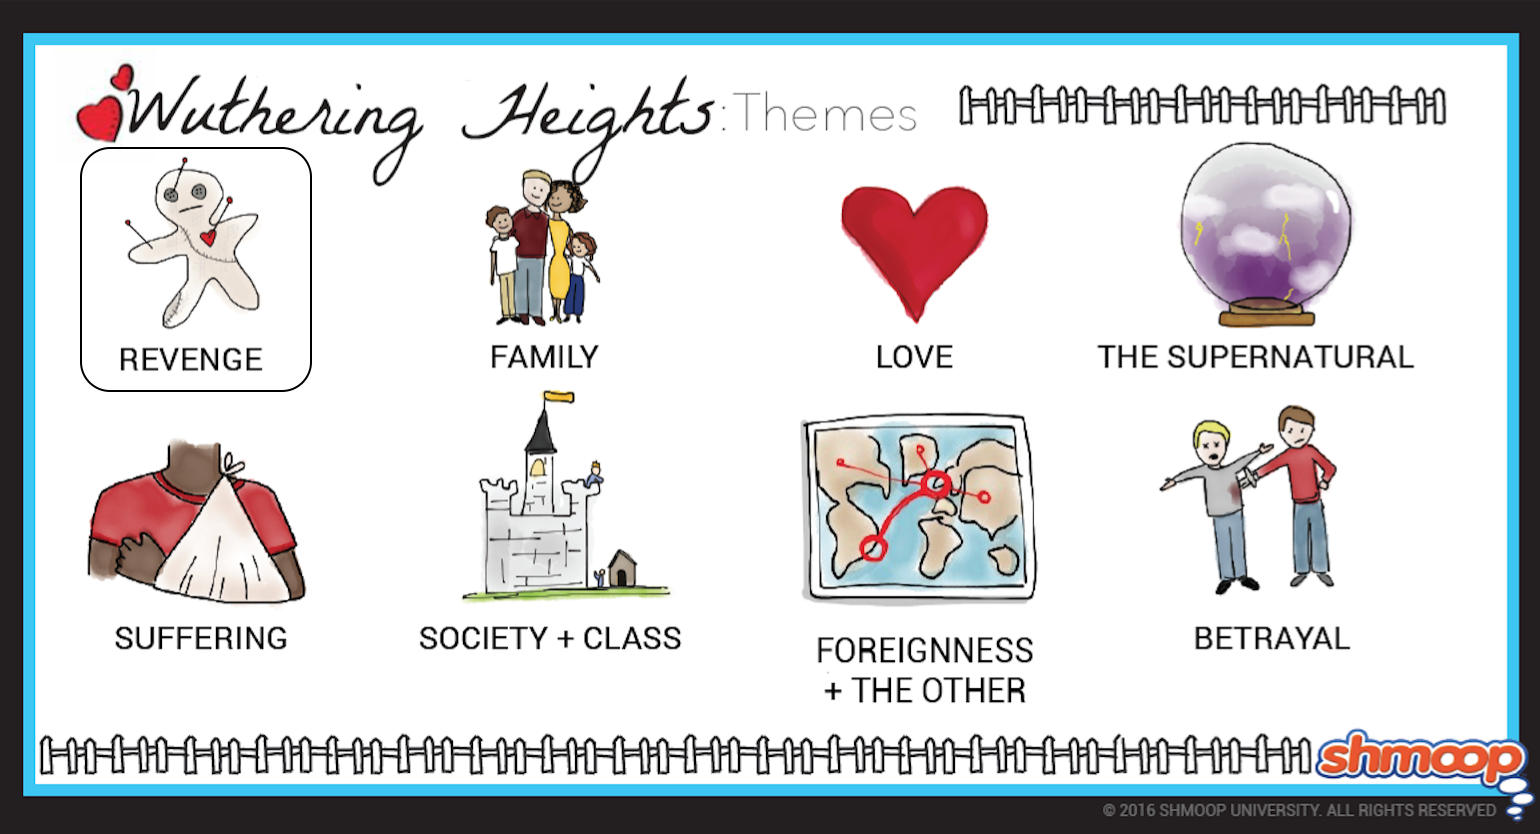 an analysis of the shaping heathcliffs view of family in wuthering heights by emily bronte Transcript of character development in wuthering heights, great gatsby and other books character development in wuthering heights and.